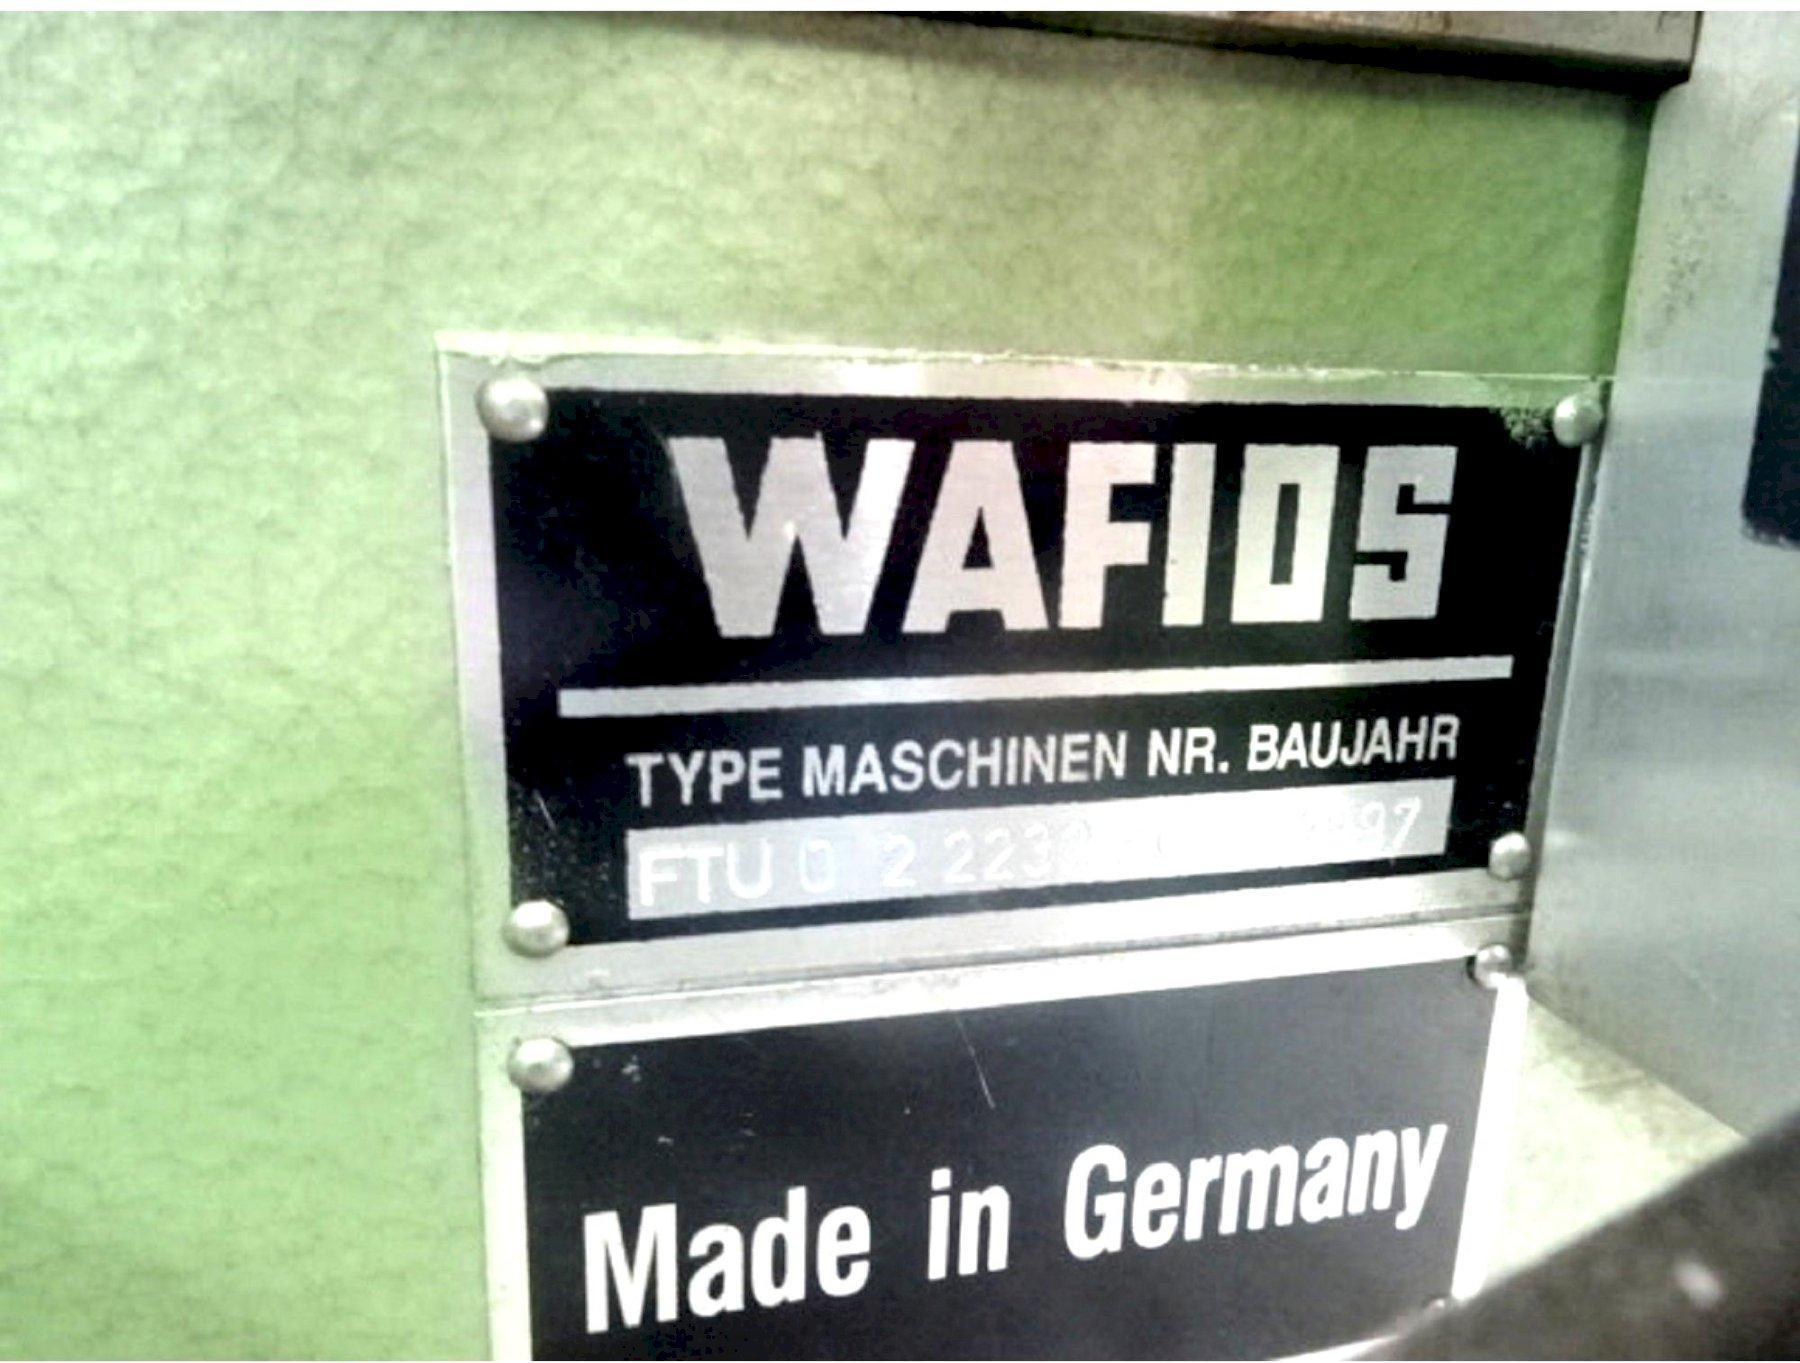 Wafios Model FTU-0 Spring Coiling Machine